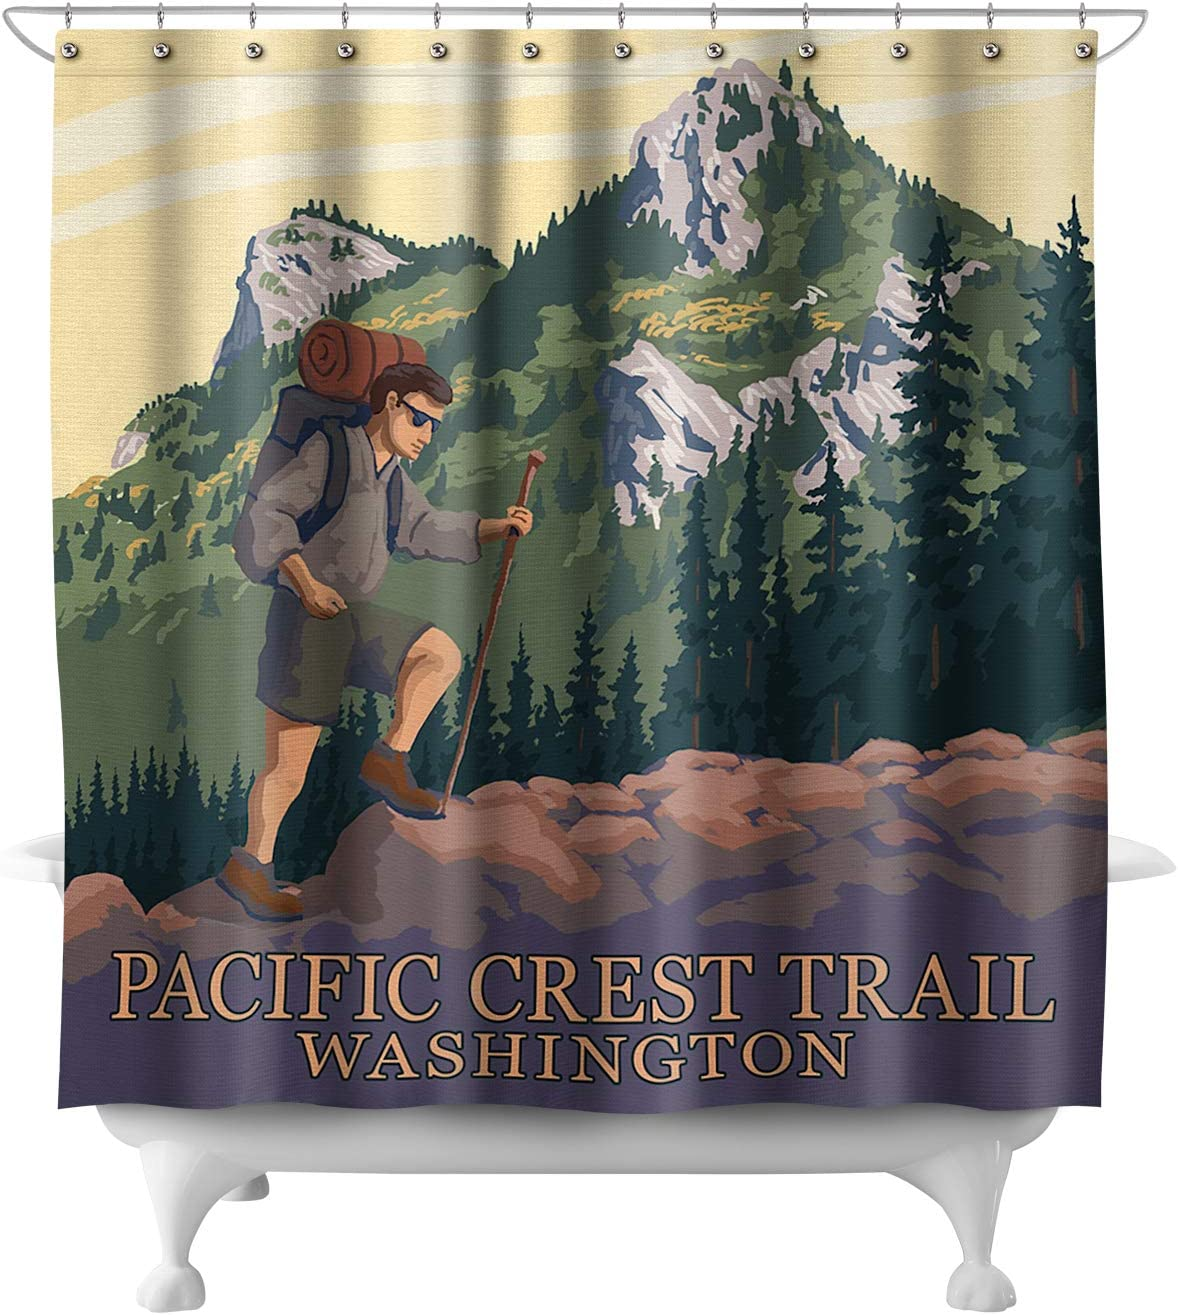 Pacific Crest Trail, Washington - Mountain Hiker 46574 (74x74 Polyester Shower Curtain)